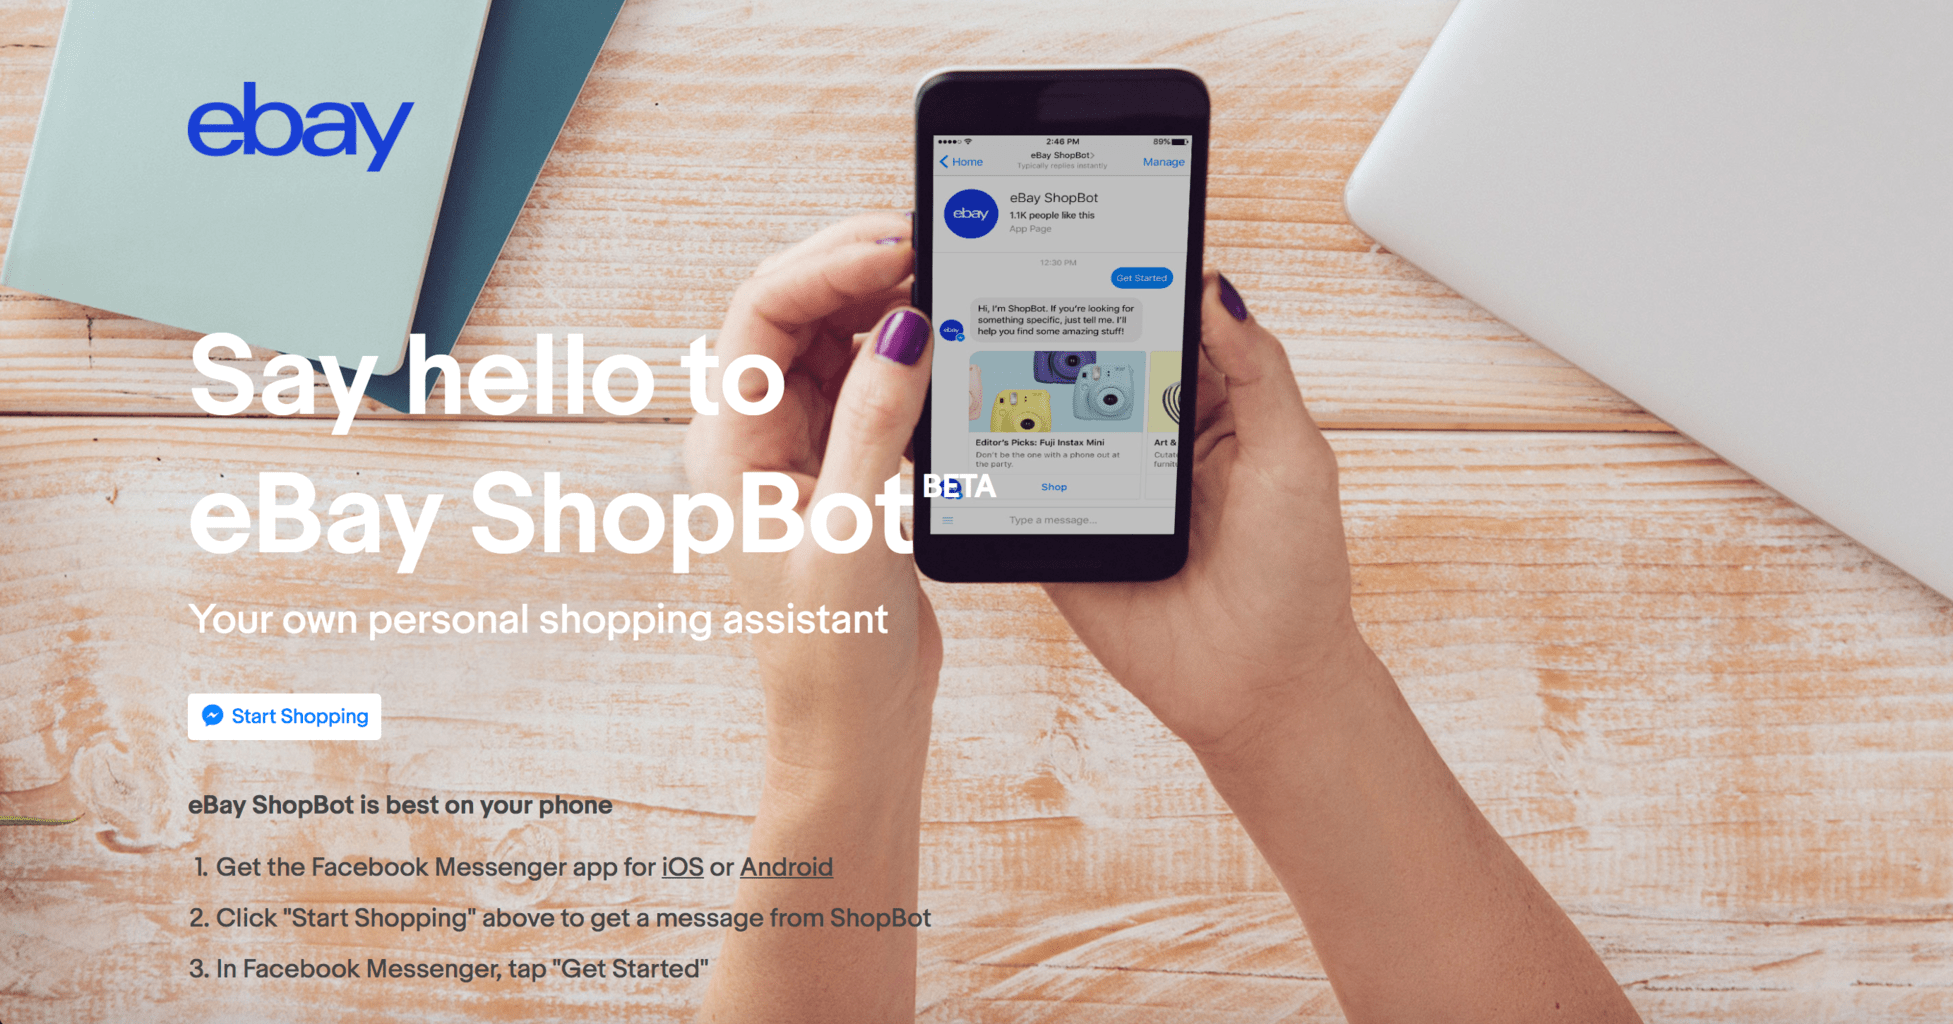 eBay shopbot screenshot